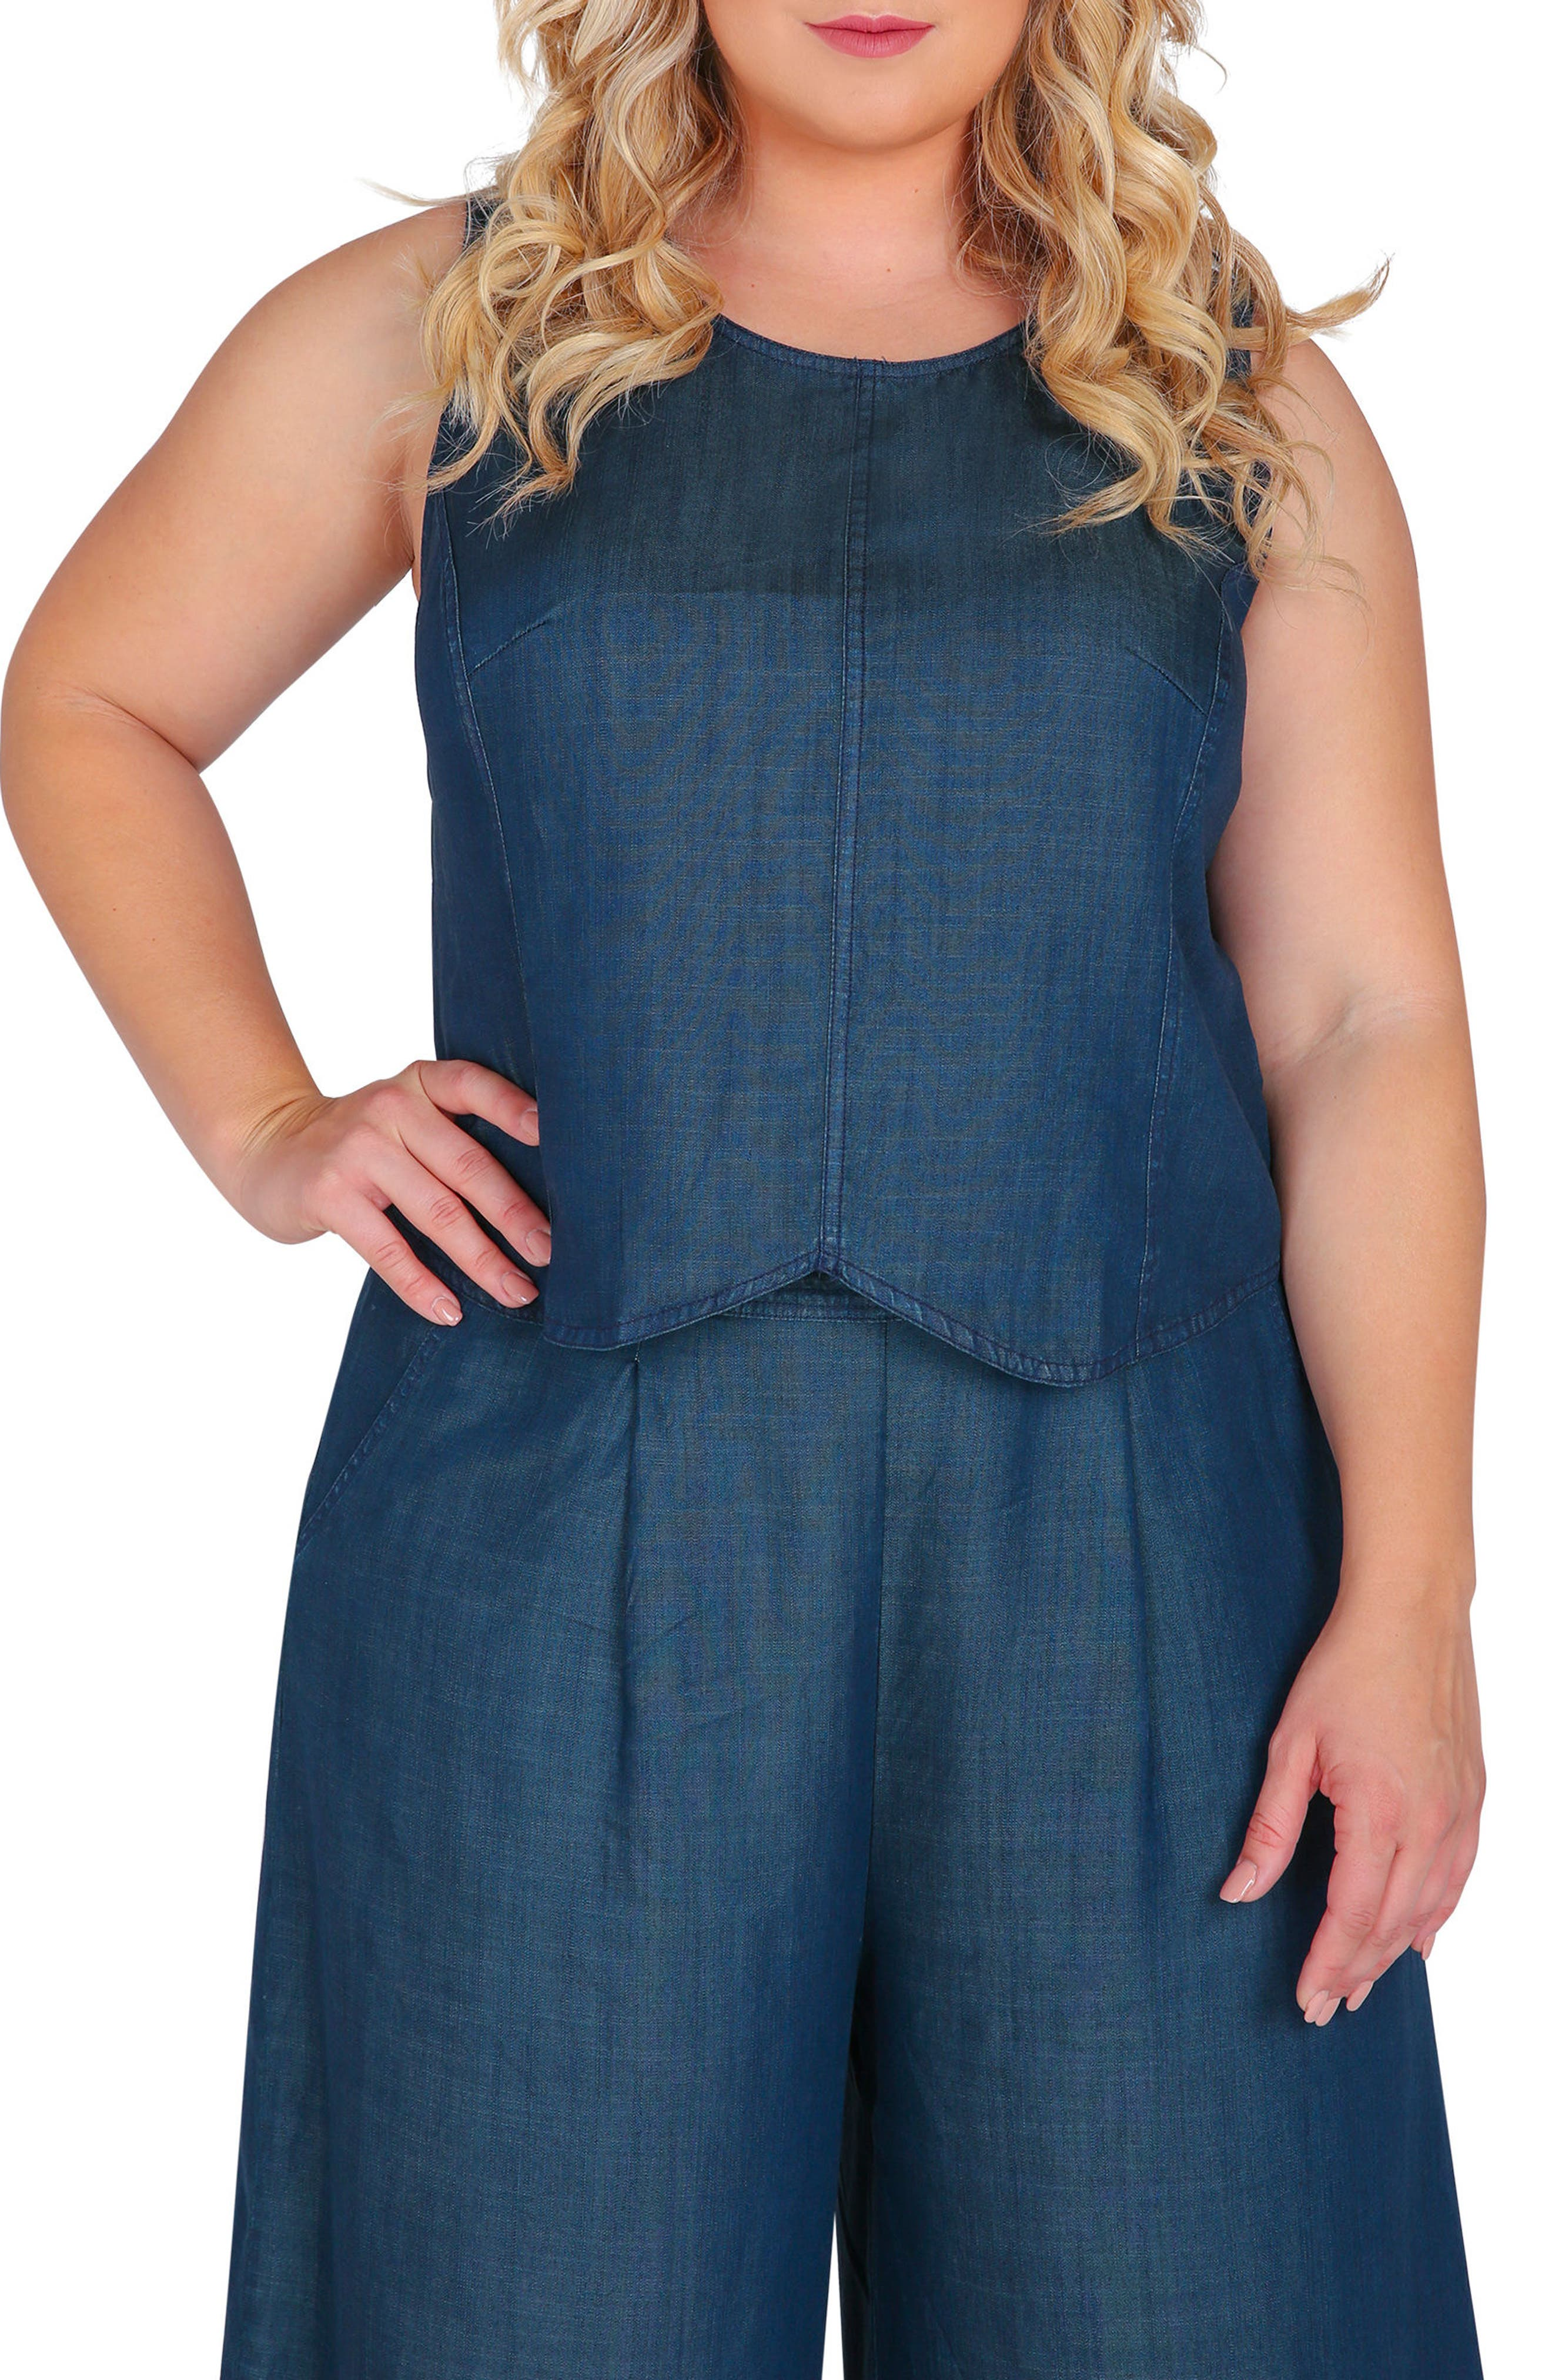 Lidia Tencel<sup>®</sup> Skimmer Top,                         Main,                         color, Blue